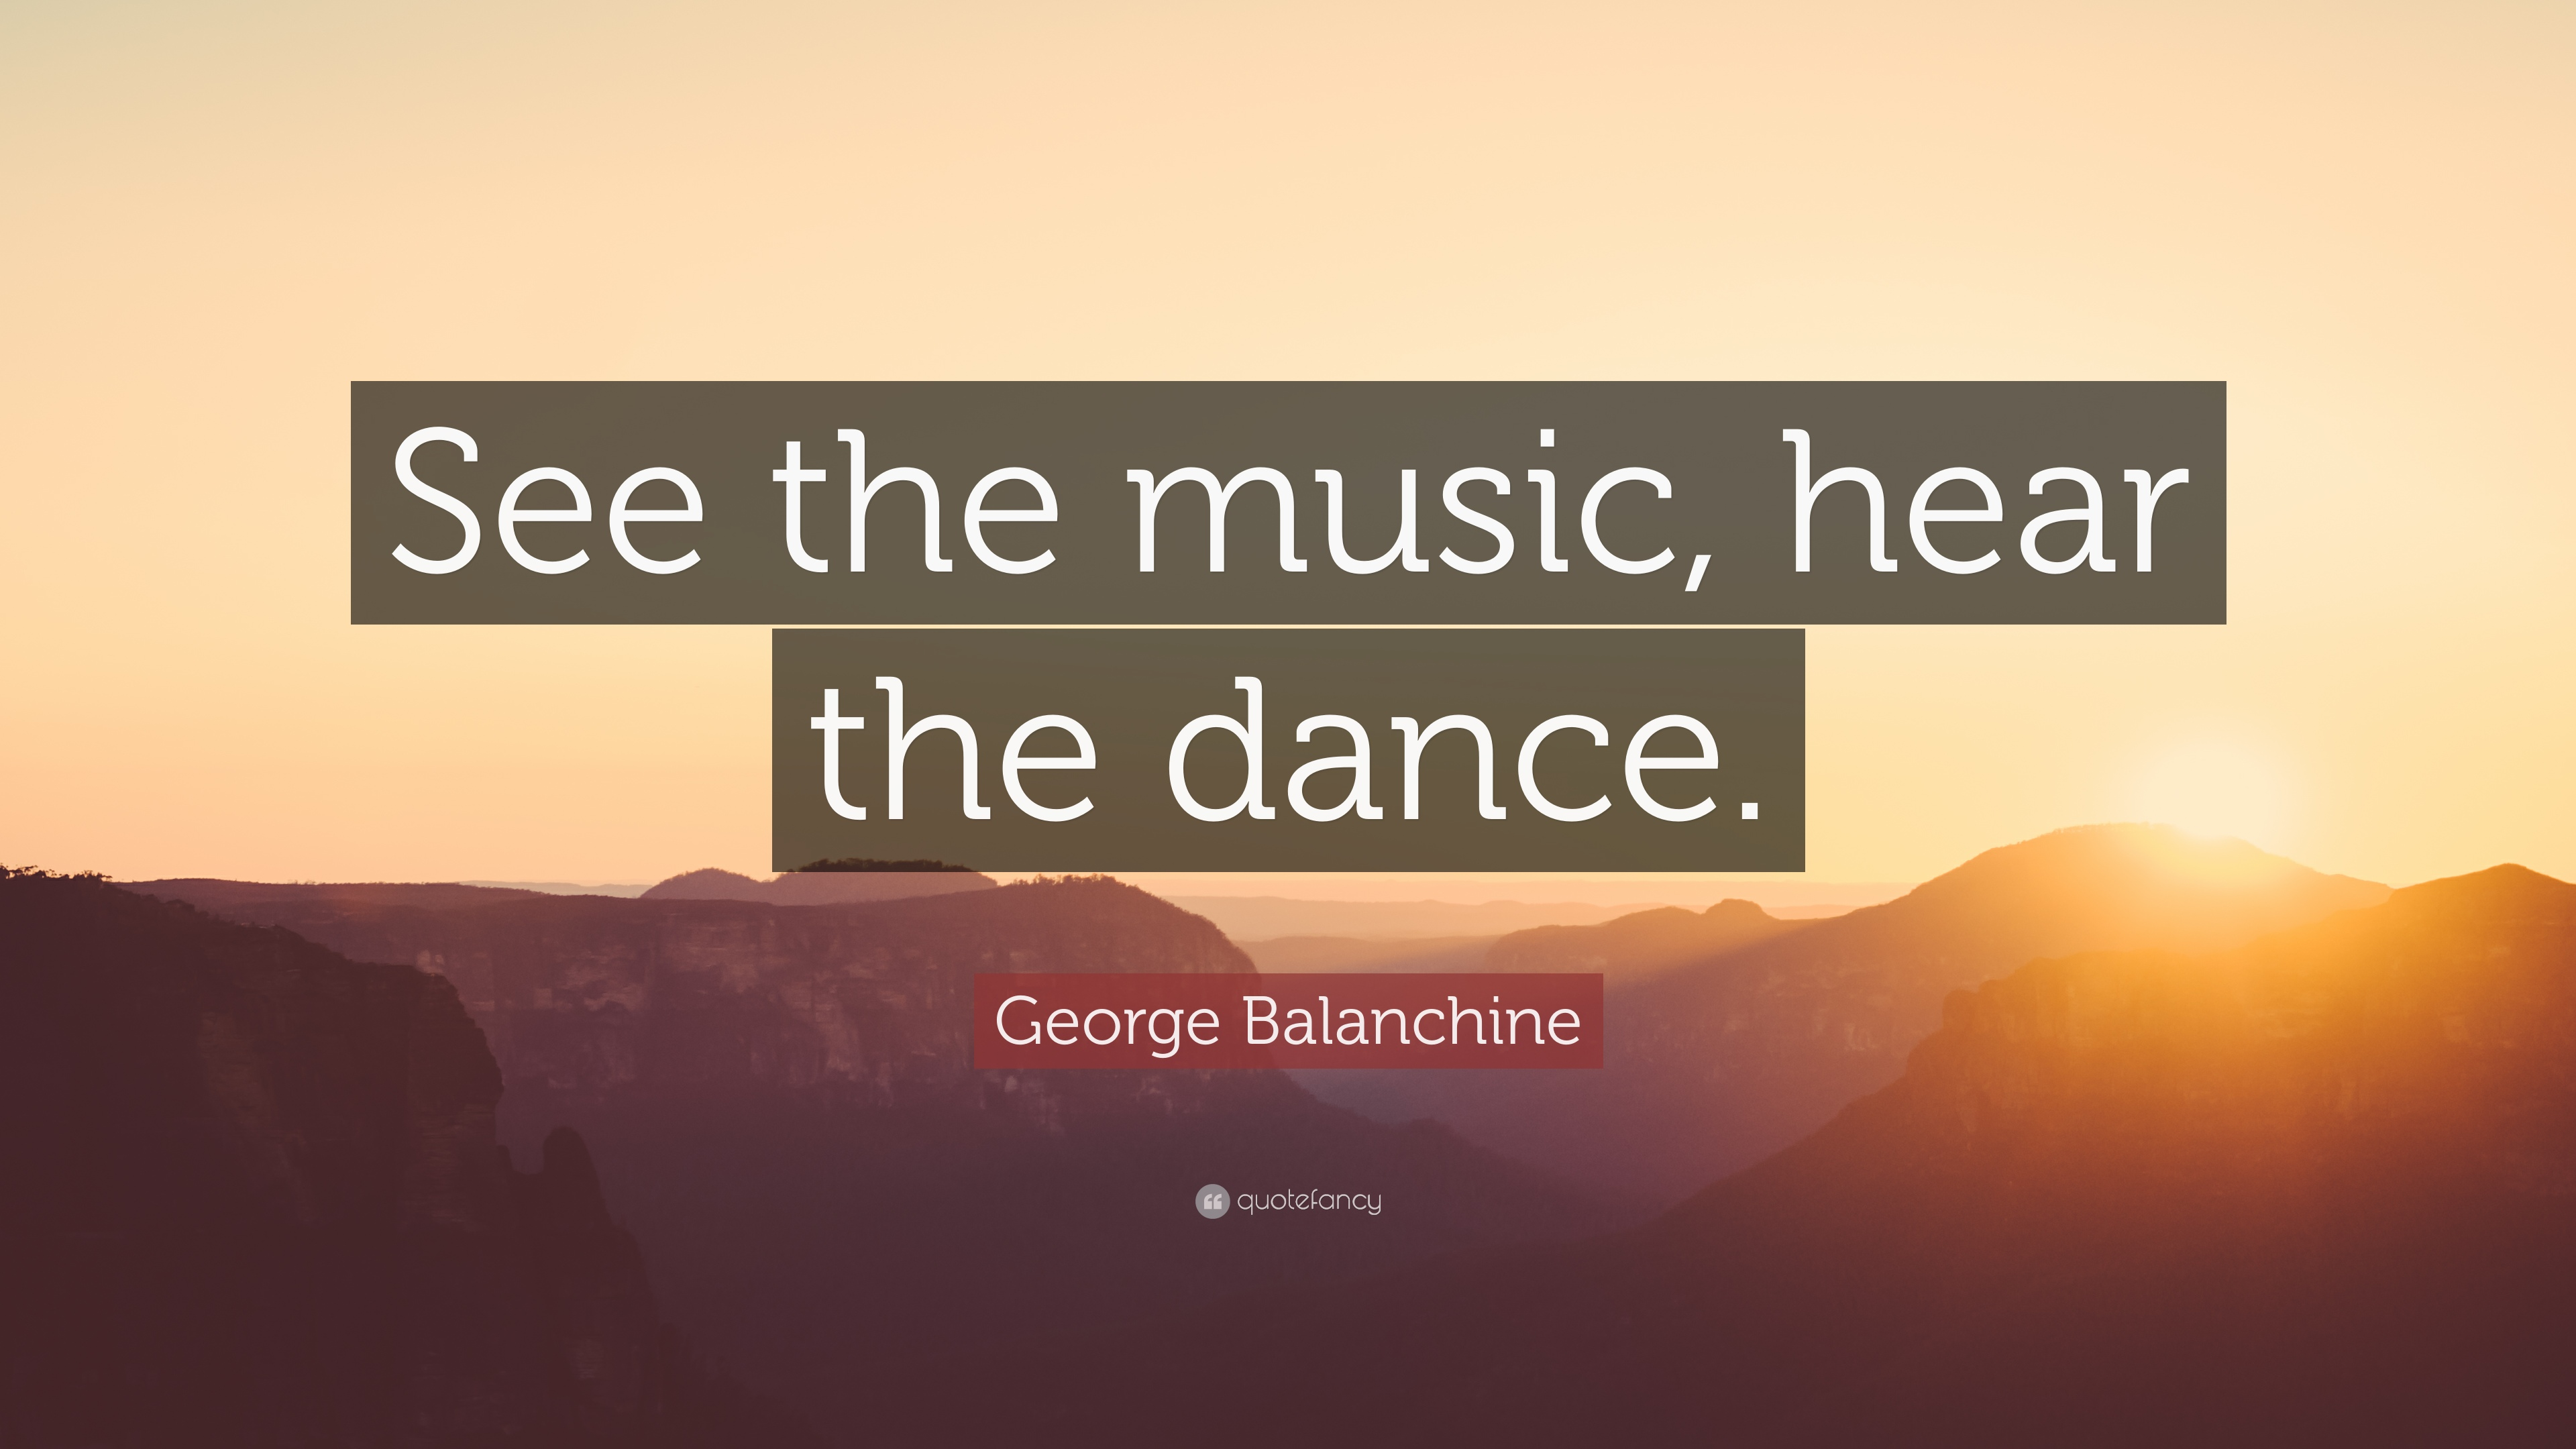 George Balanchine Quotes 30 Wallpapers Quotefancy